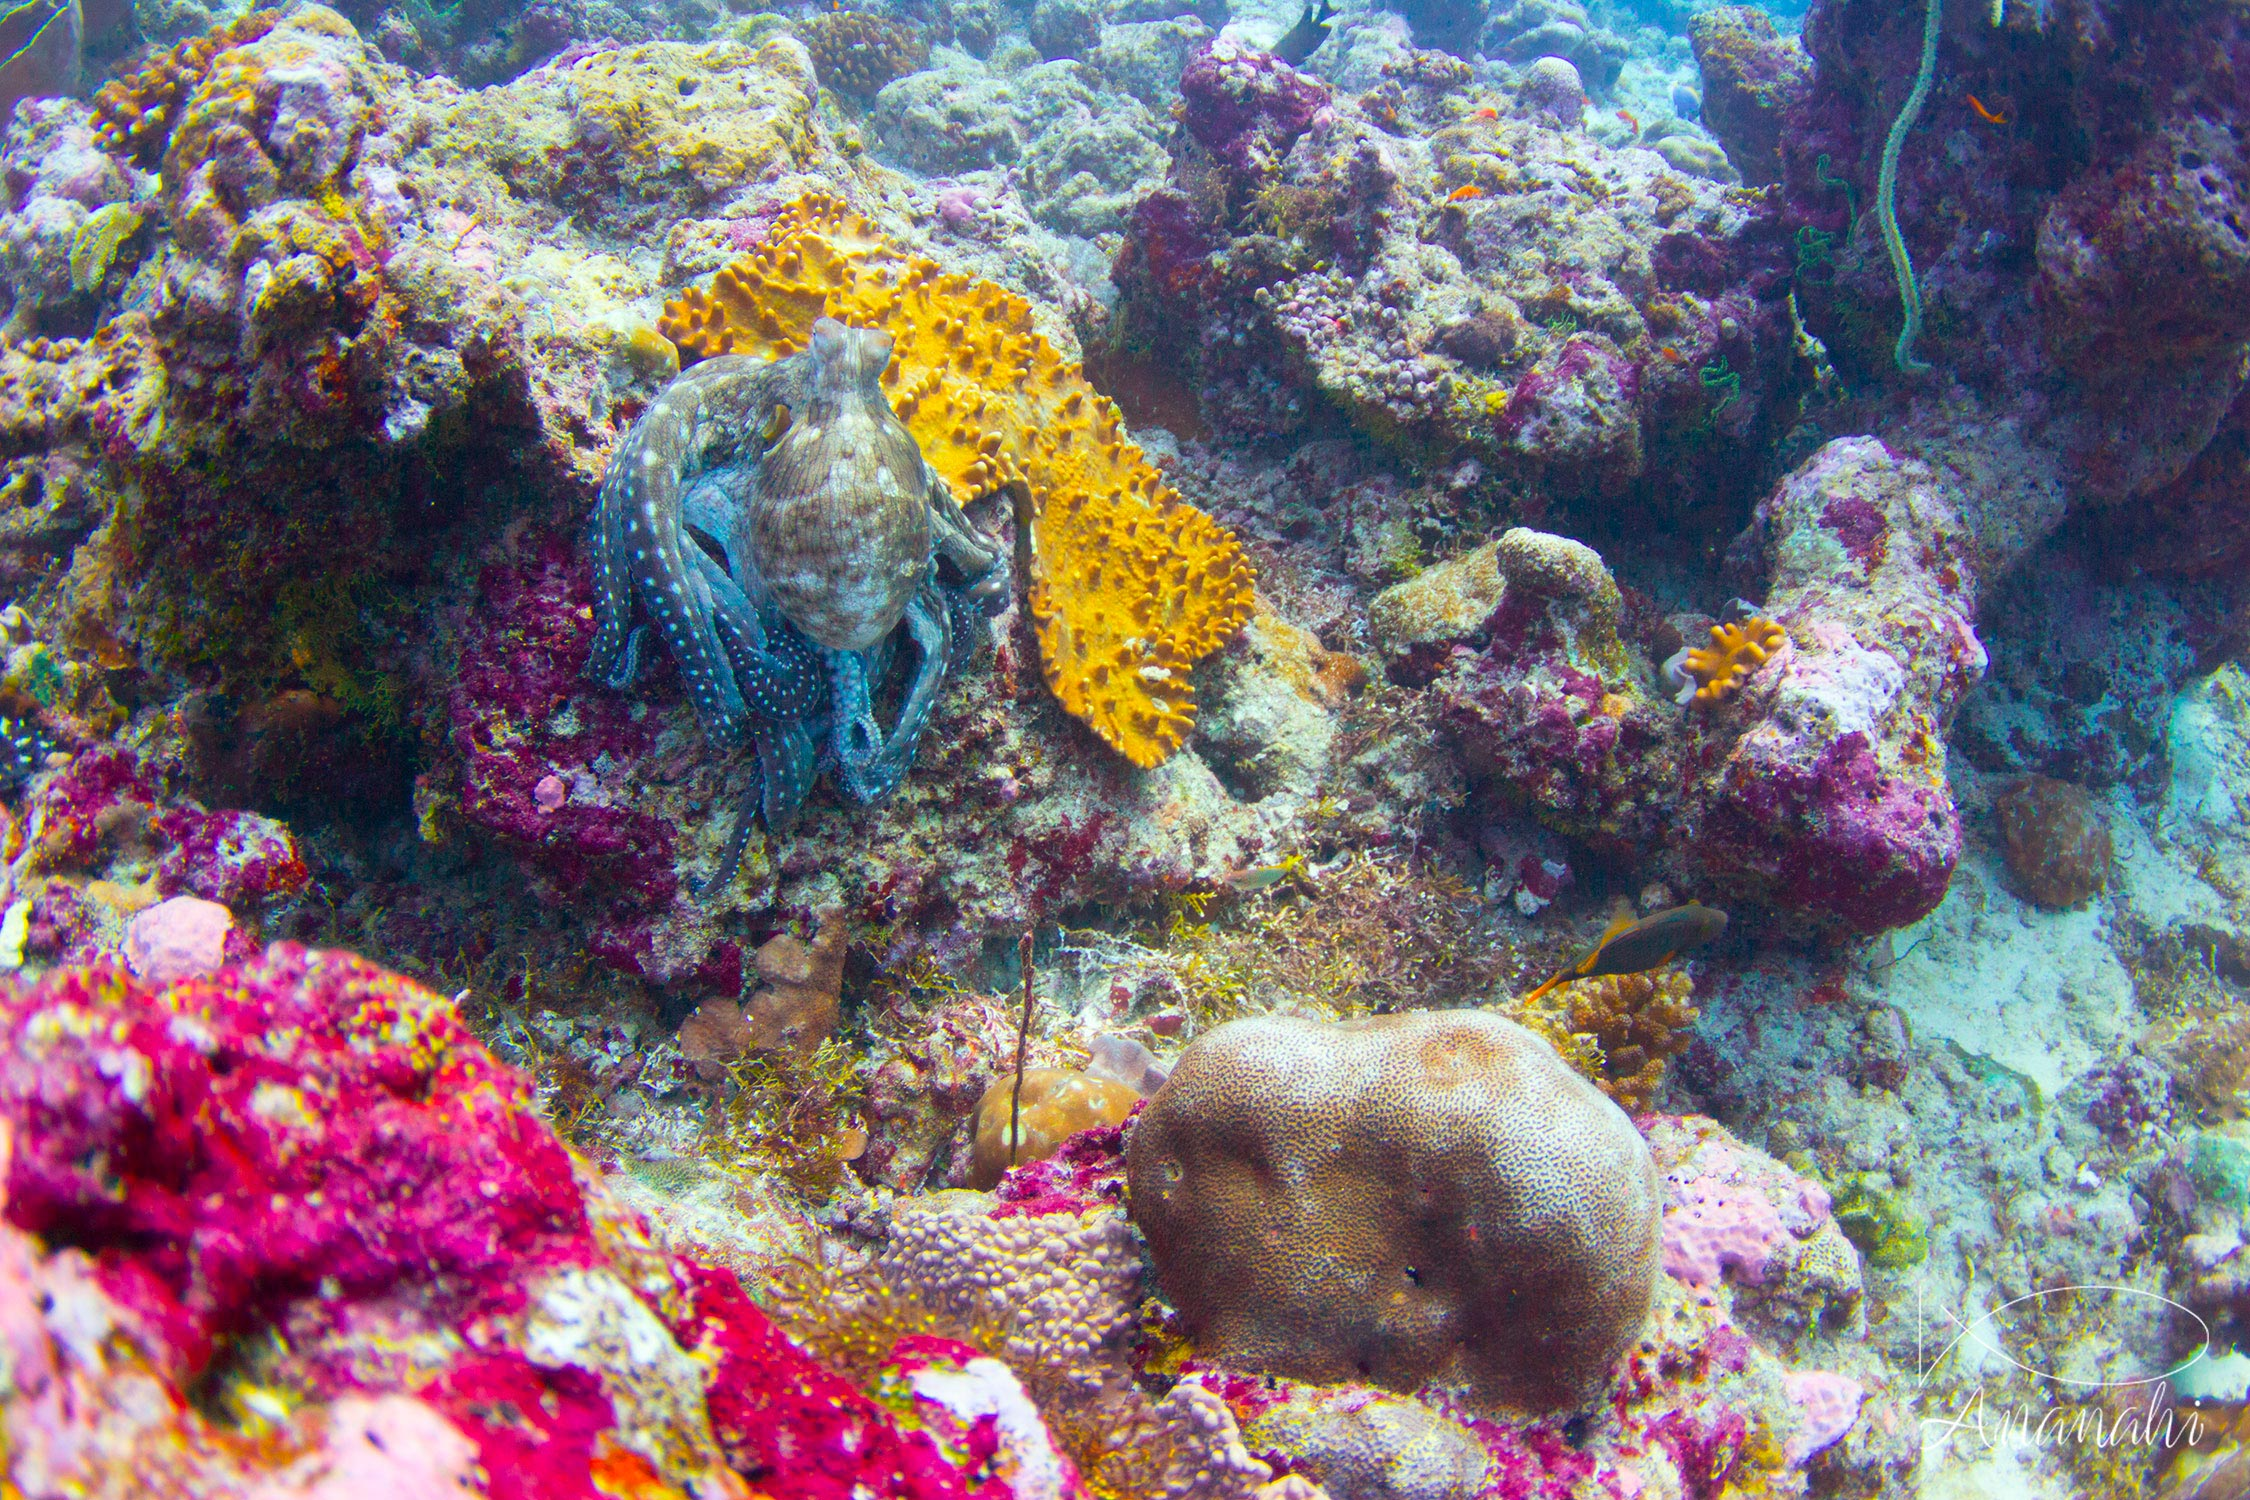 Common reef octopus of Maldives